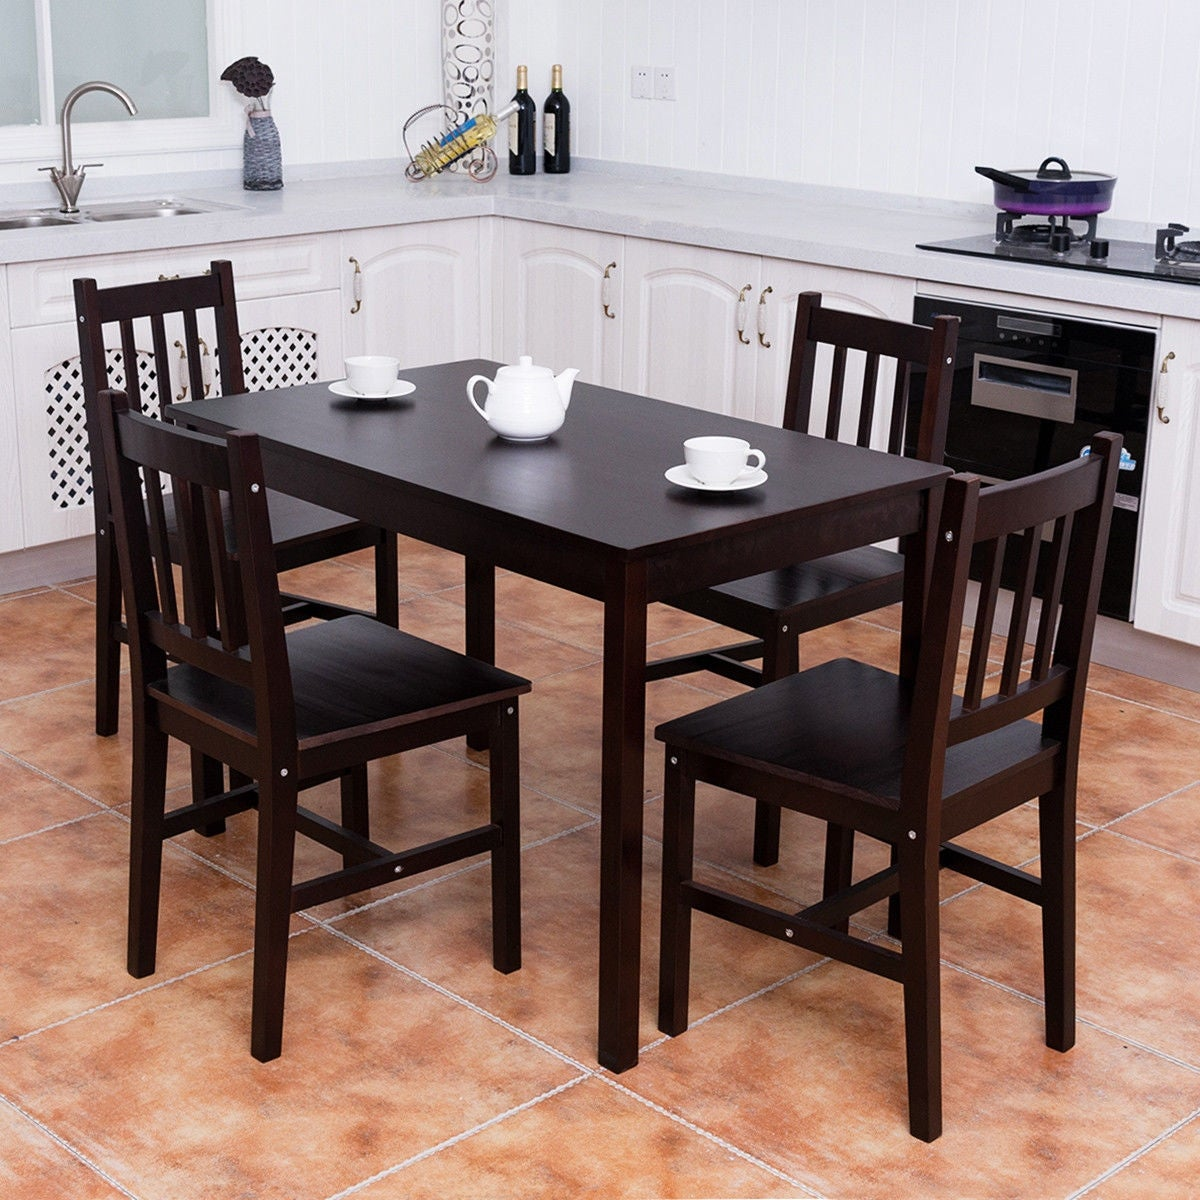 Costway 5PCS Solid Pine Wood Dining Set Table And 4 Chairs Home Kitchen  Furniture Brown   Free Shipping Today   Overstock   24937988